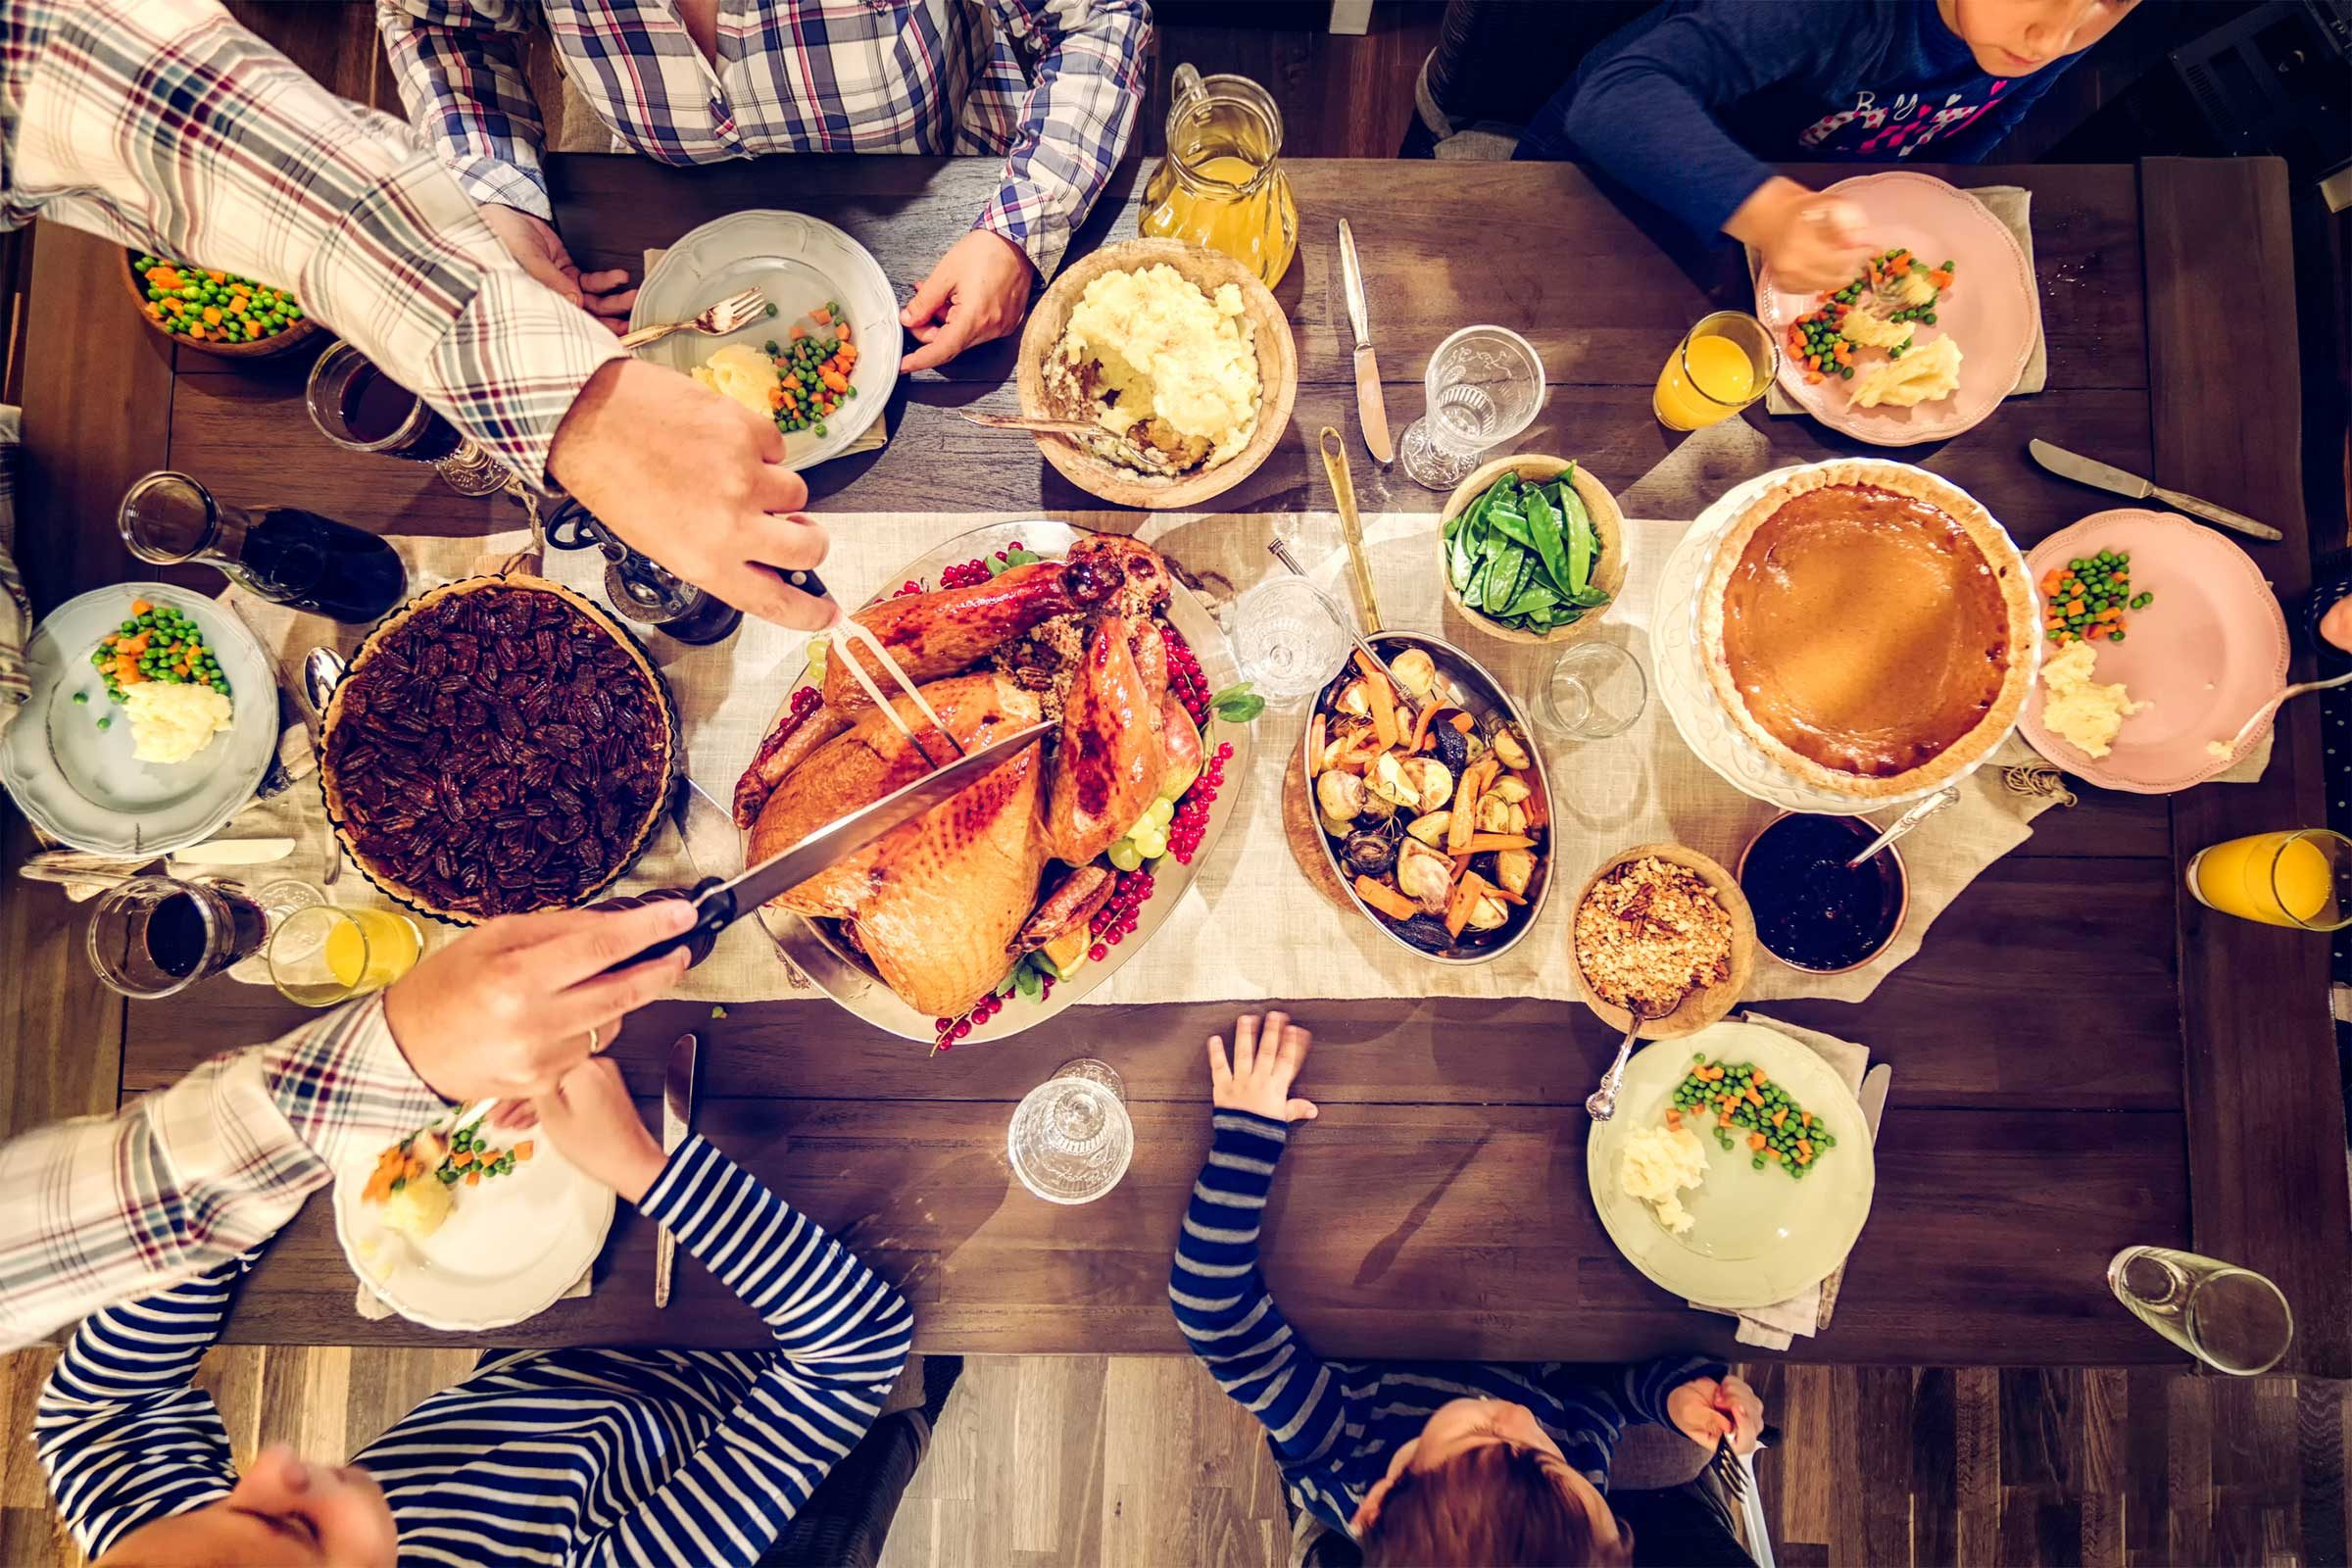 These are Things You Should Never, Ever Discuss at Thanksgiving Dinner